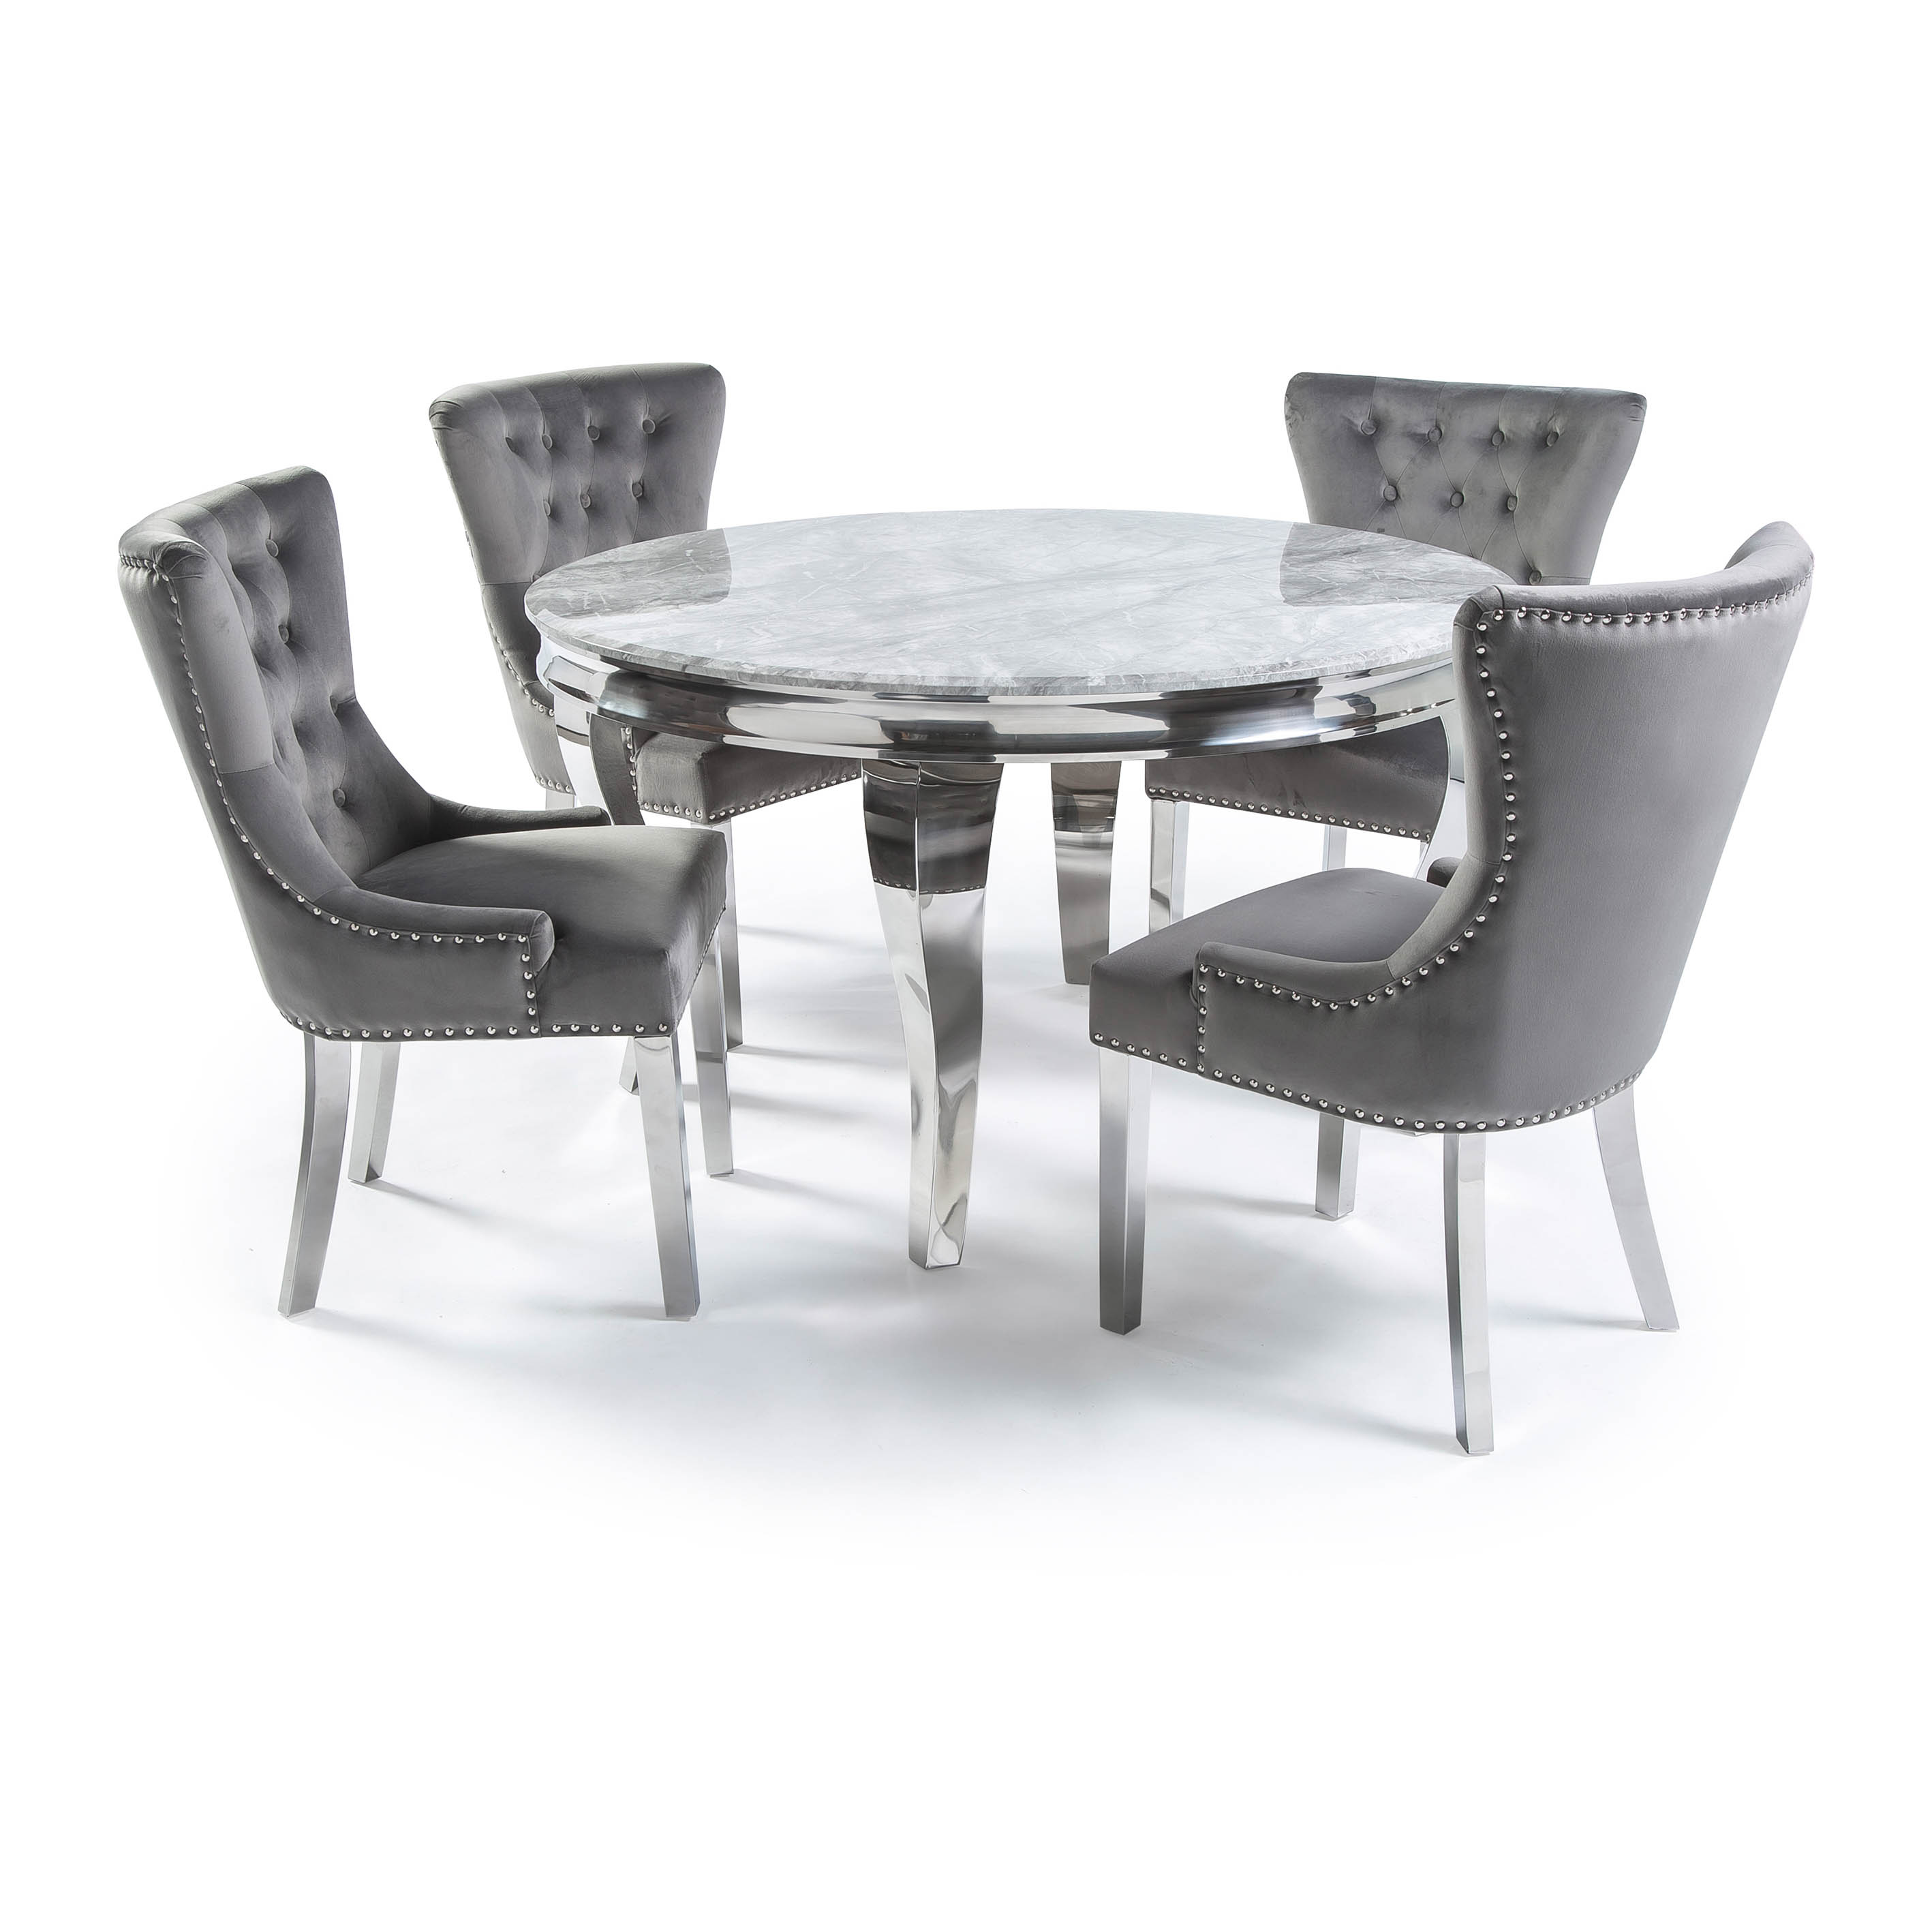 1.3m Circular Louis Polished Steel Dining Grey Marble Table Set with 4 Knightsbridge Grey Brushed Velvet Dining Chair – Plain